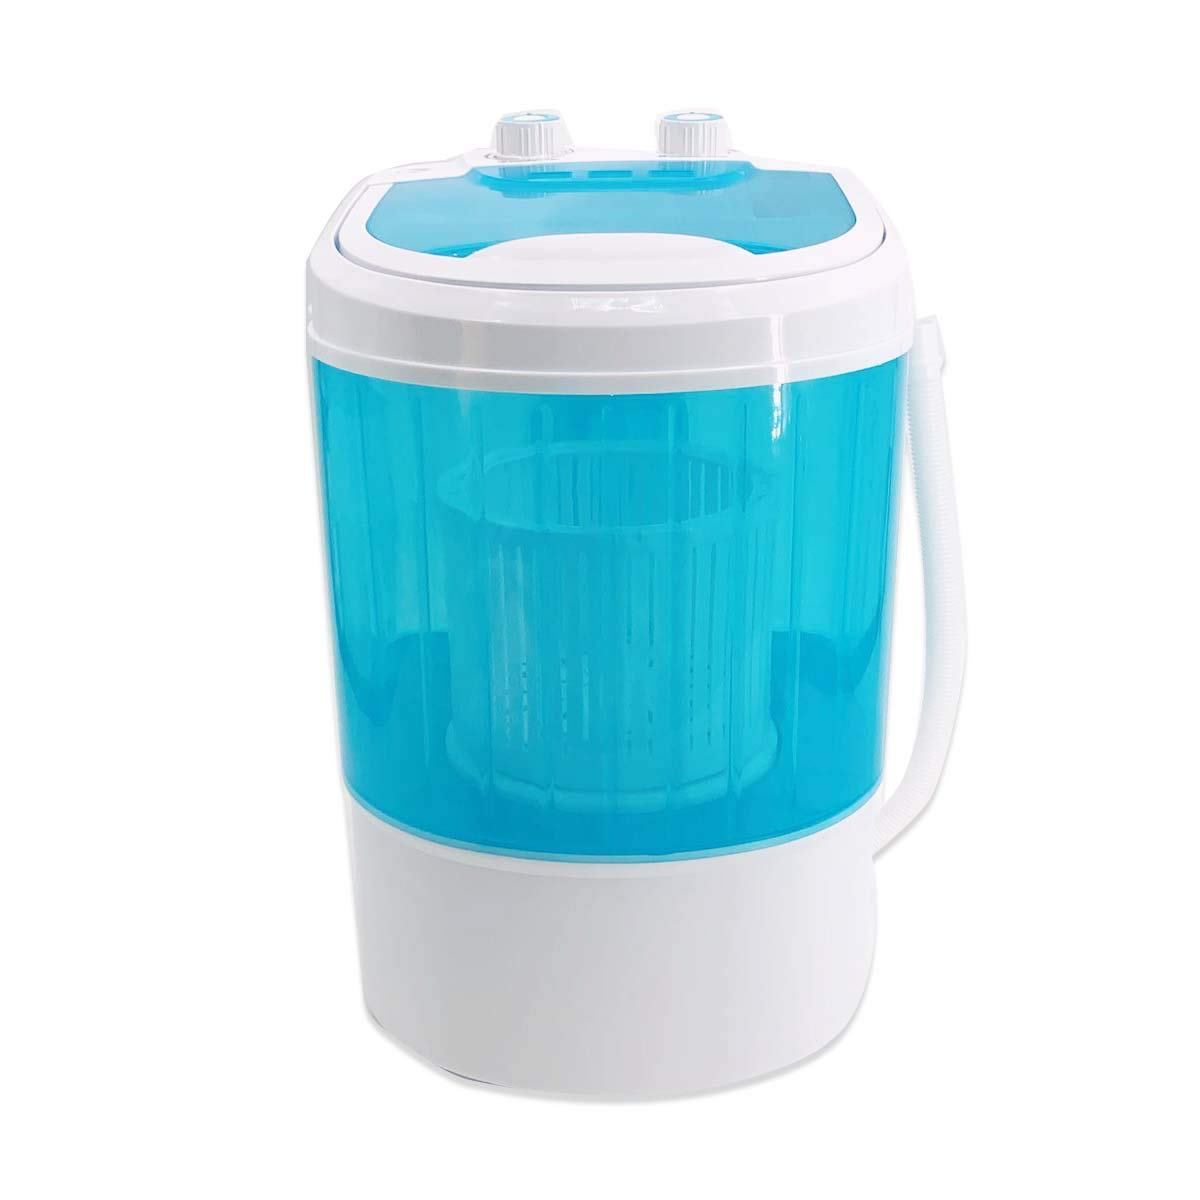 EWANYO Mini Portable Washing Machine & Spin Dryer Small Single Tub Washer Automatic Compact Washer with Timer Control and Drain Hose Mini Travel Washing Machine for Apartment, RV, Traveling (Blue)